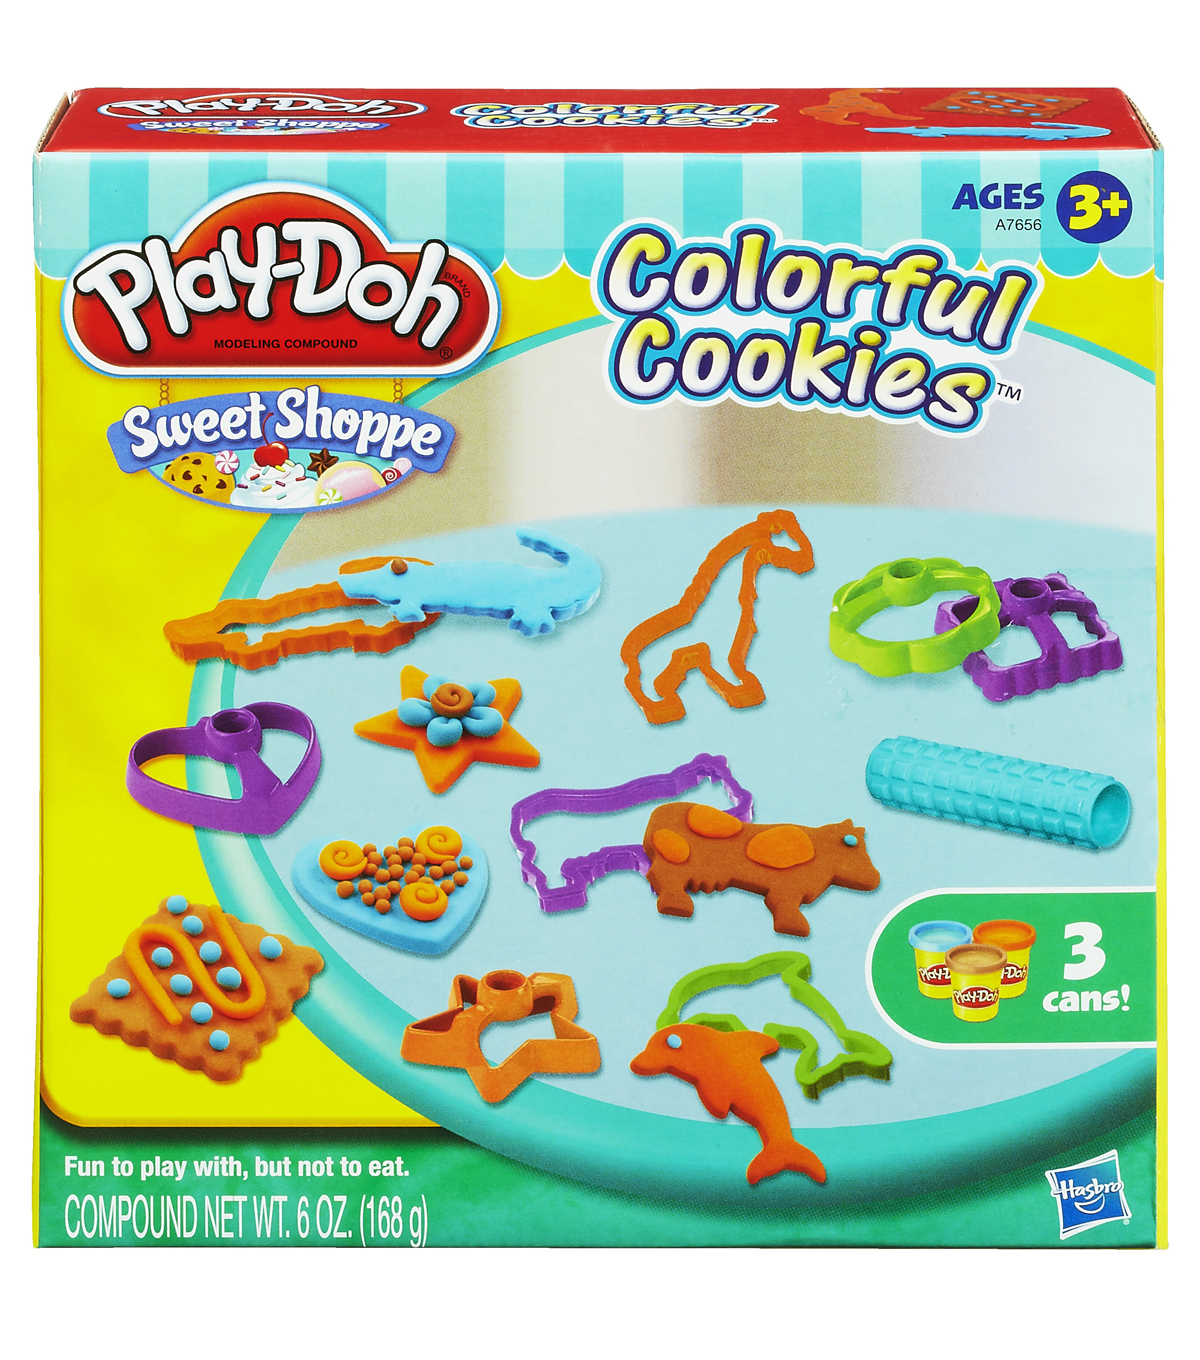 toko mainan online PLAY-DOH COLORFUL COOKIES - A7656